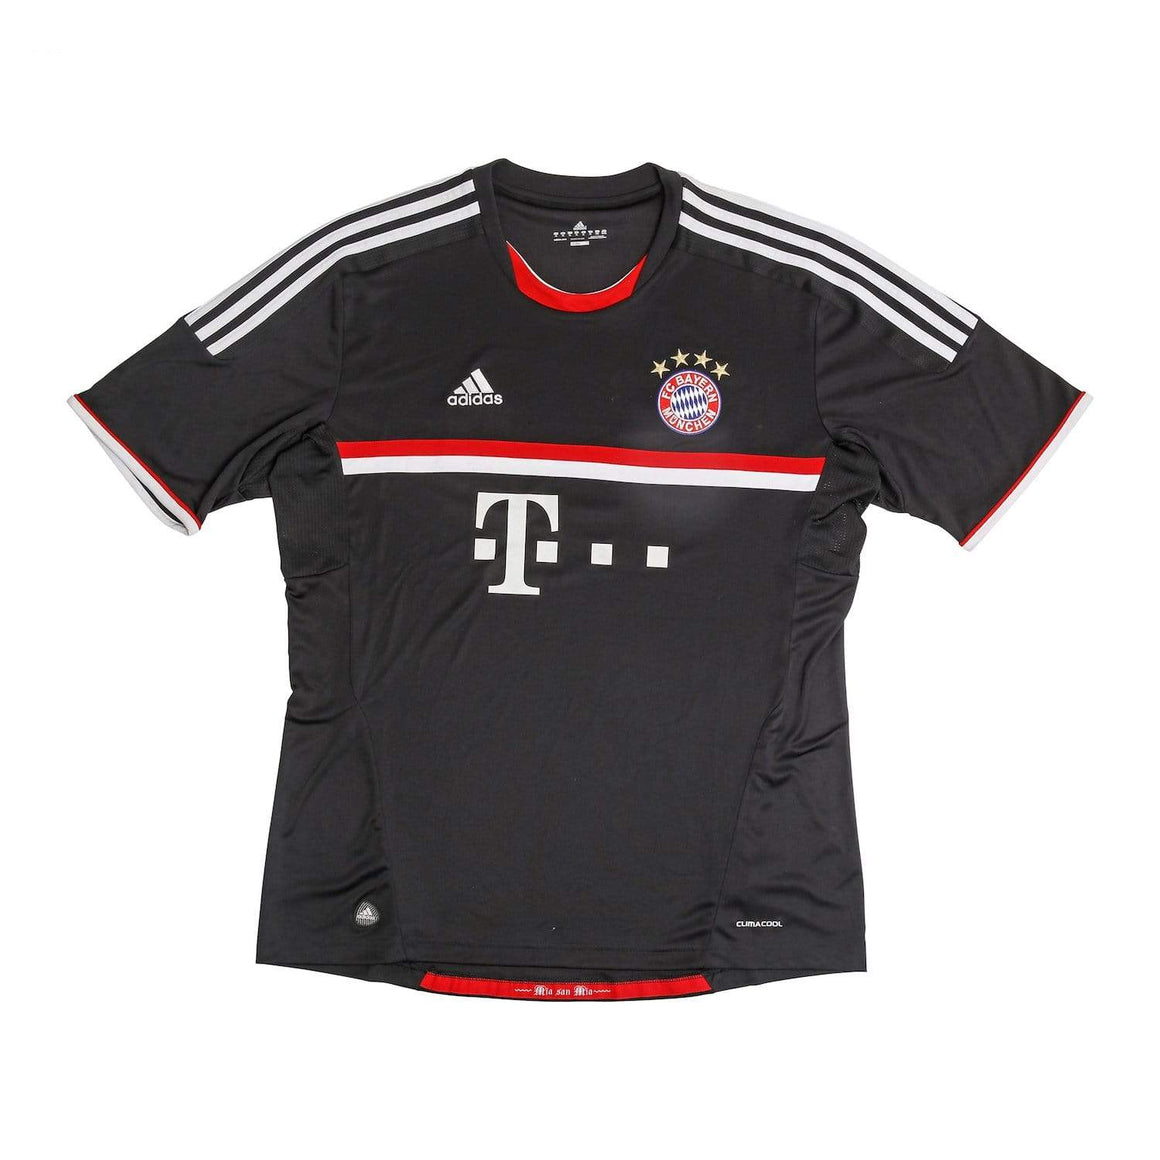 Football Shirt Collective 2011-12 Bayern Munich away shirt XL (Excellent)